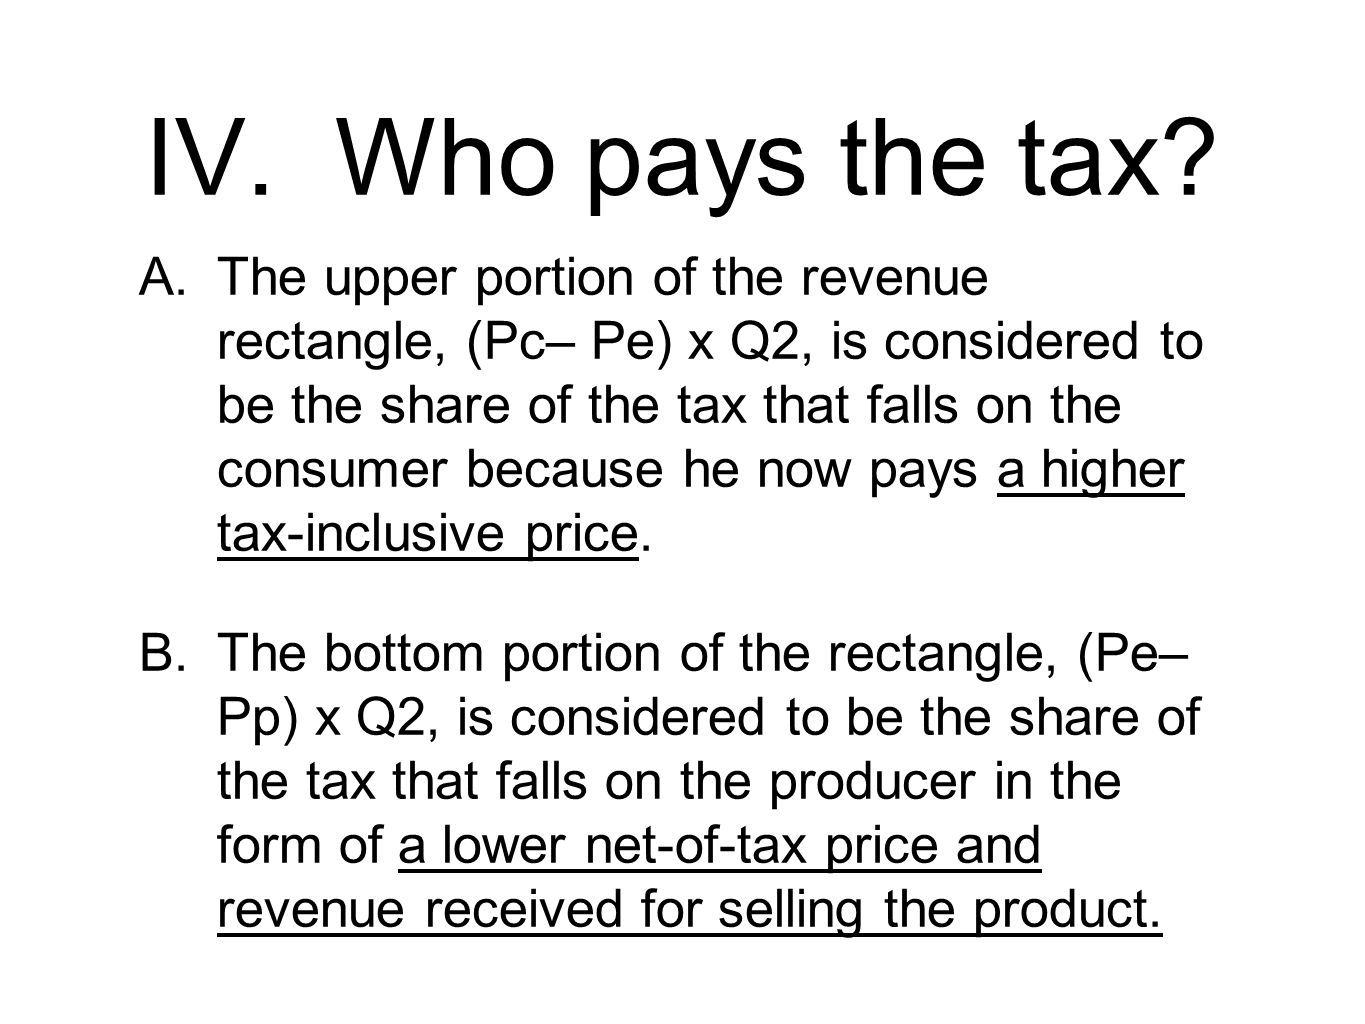 IV. Who pays the tax